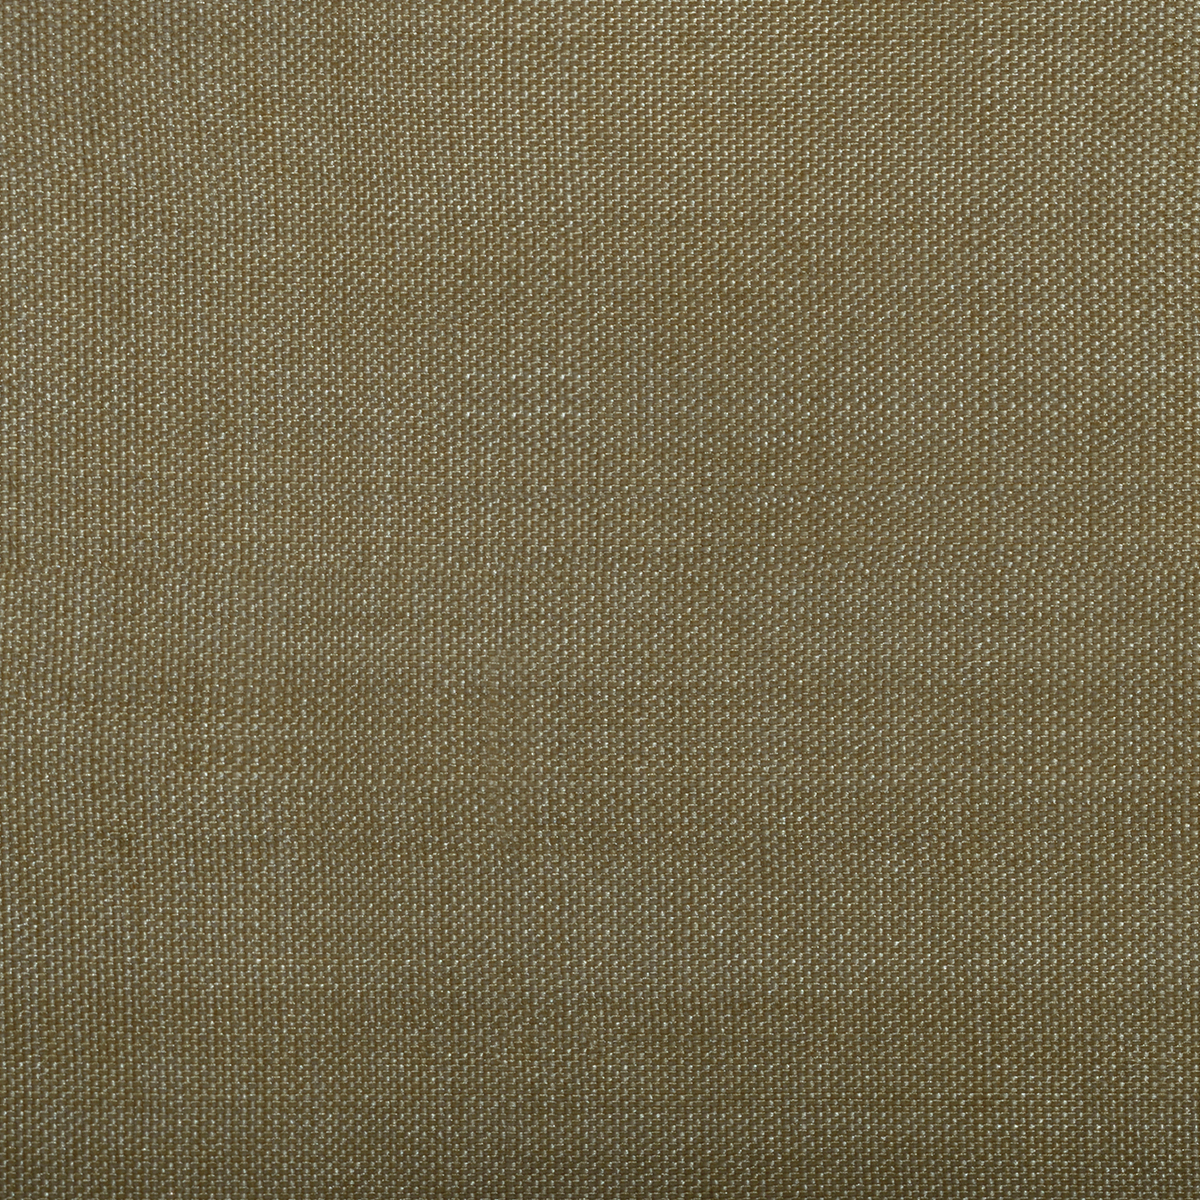 Silk for Shades - Olive